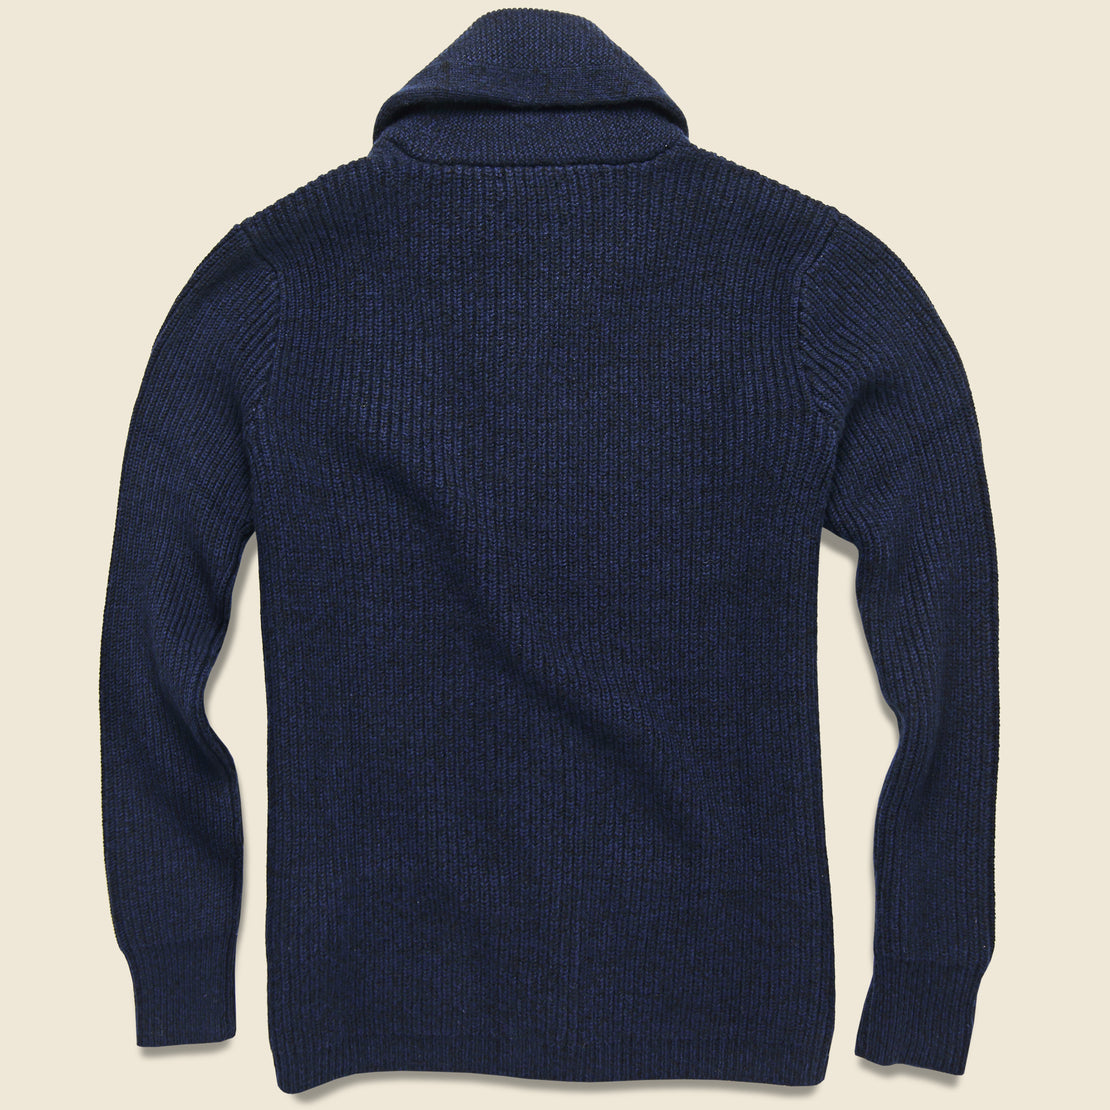 Cashmere Shawl Cardigan - Blue Black